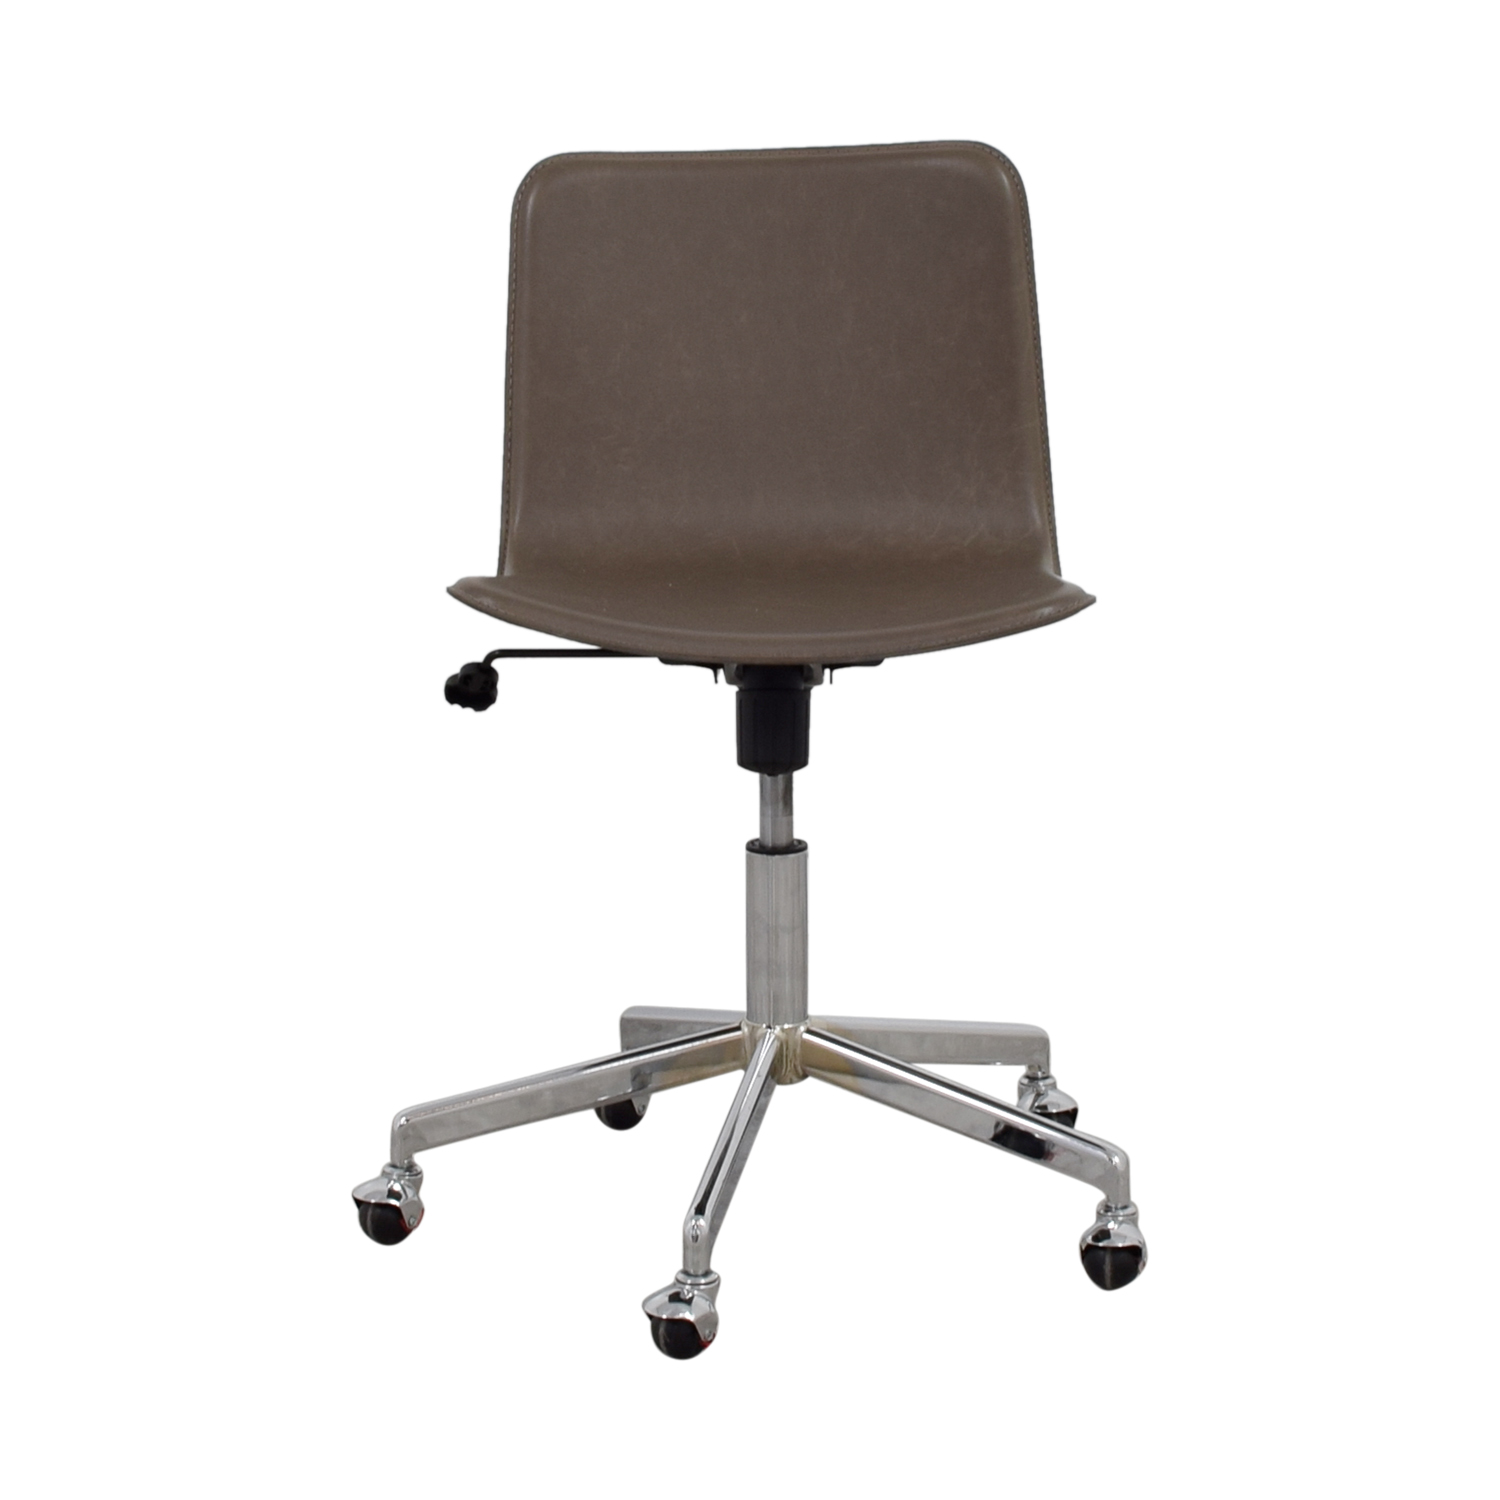 83% OFF   CB2 CB2 Grey Leather Adjustable Office Chair On Castors / Chairs